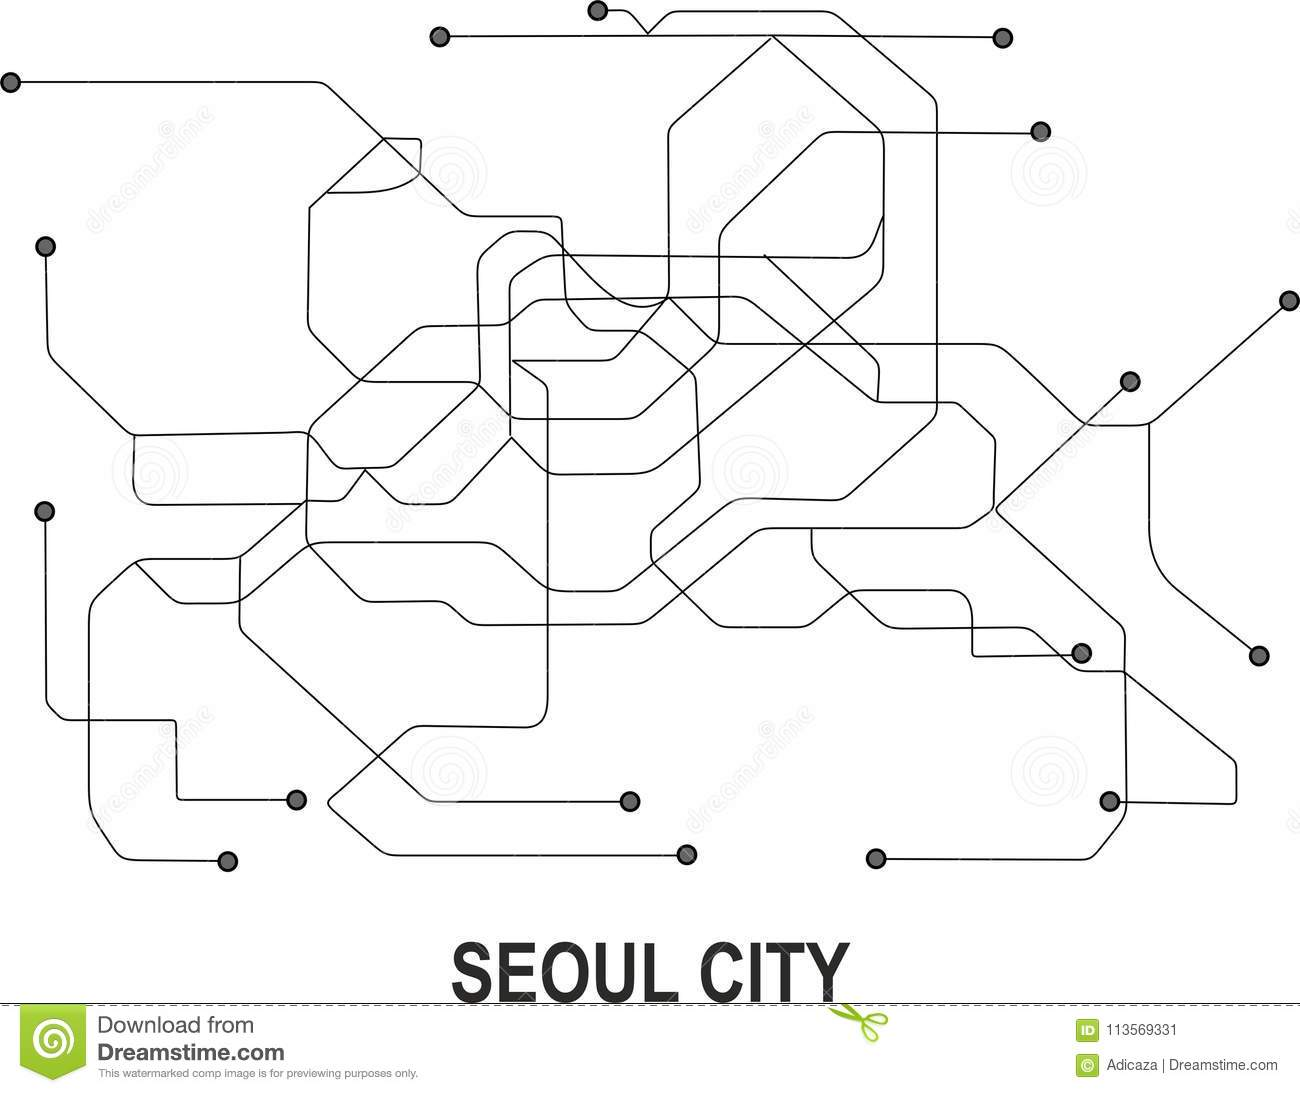 Black And White Subway Map.Seoul City Map Stock Vector Illustration Of Format 113569331